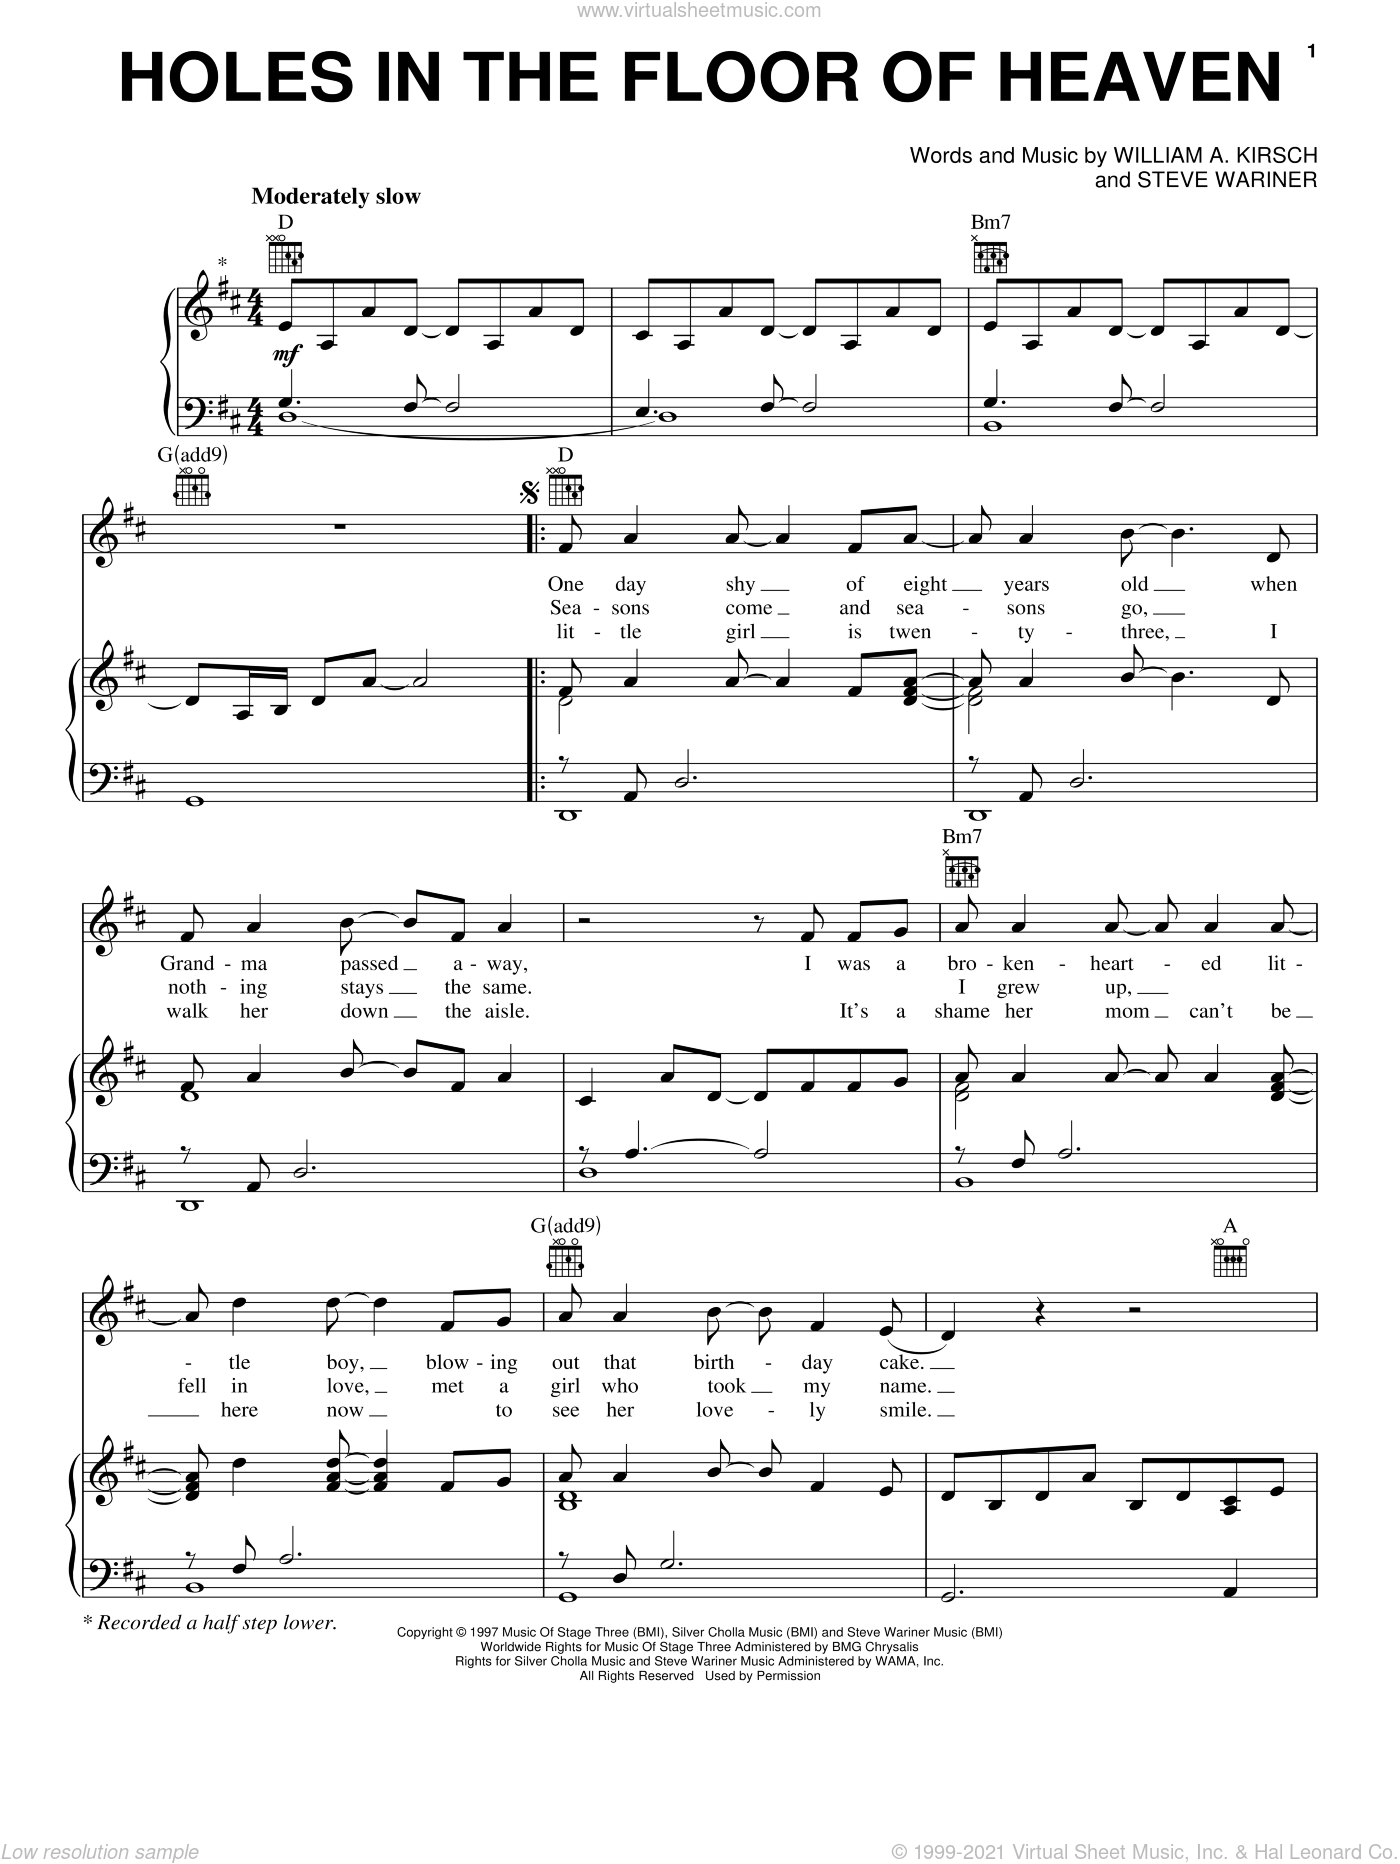 Holes In The Floor Of Heaven sheet music for voice, piano or guitar by Billy Kirsch and Steve Wariner. Score Image Preview.